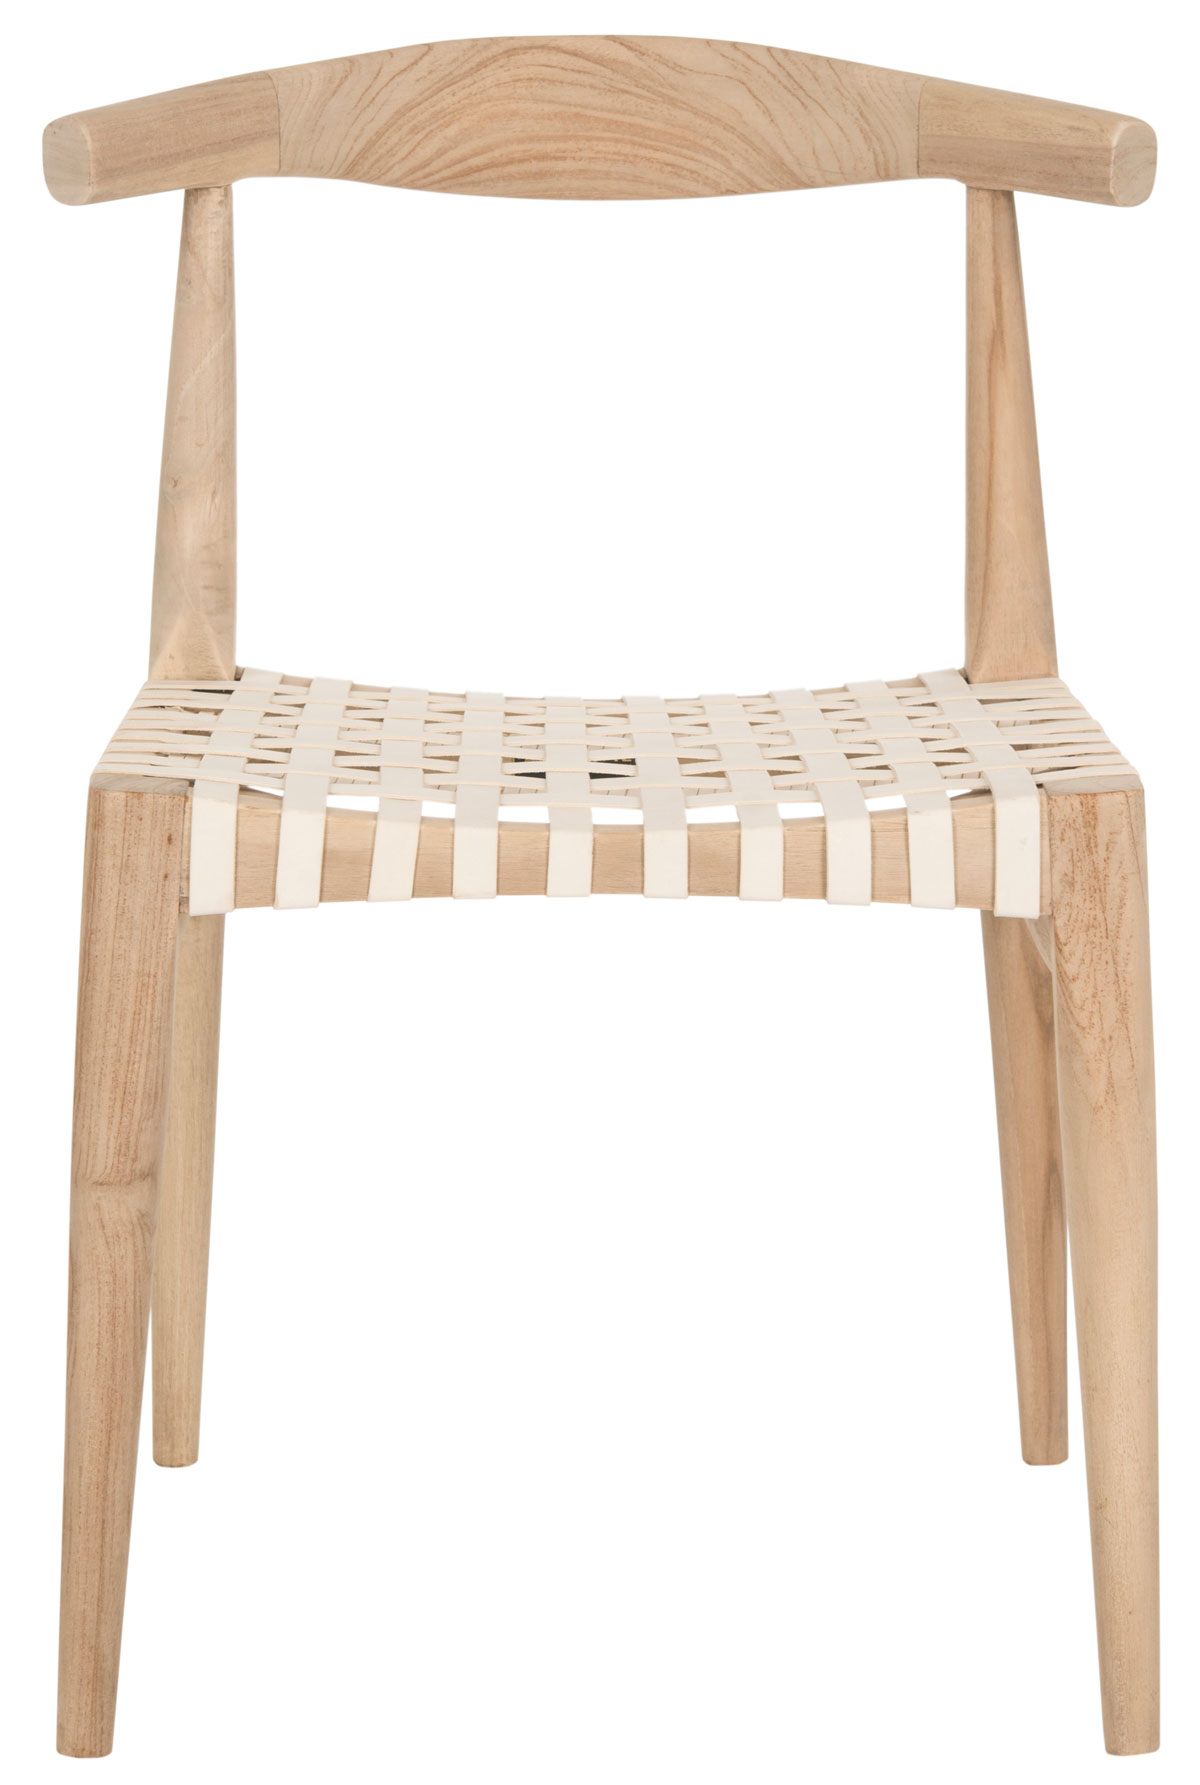 safavieh dining chairs folding chair tips fox1018a set2 furniture by share this product